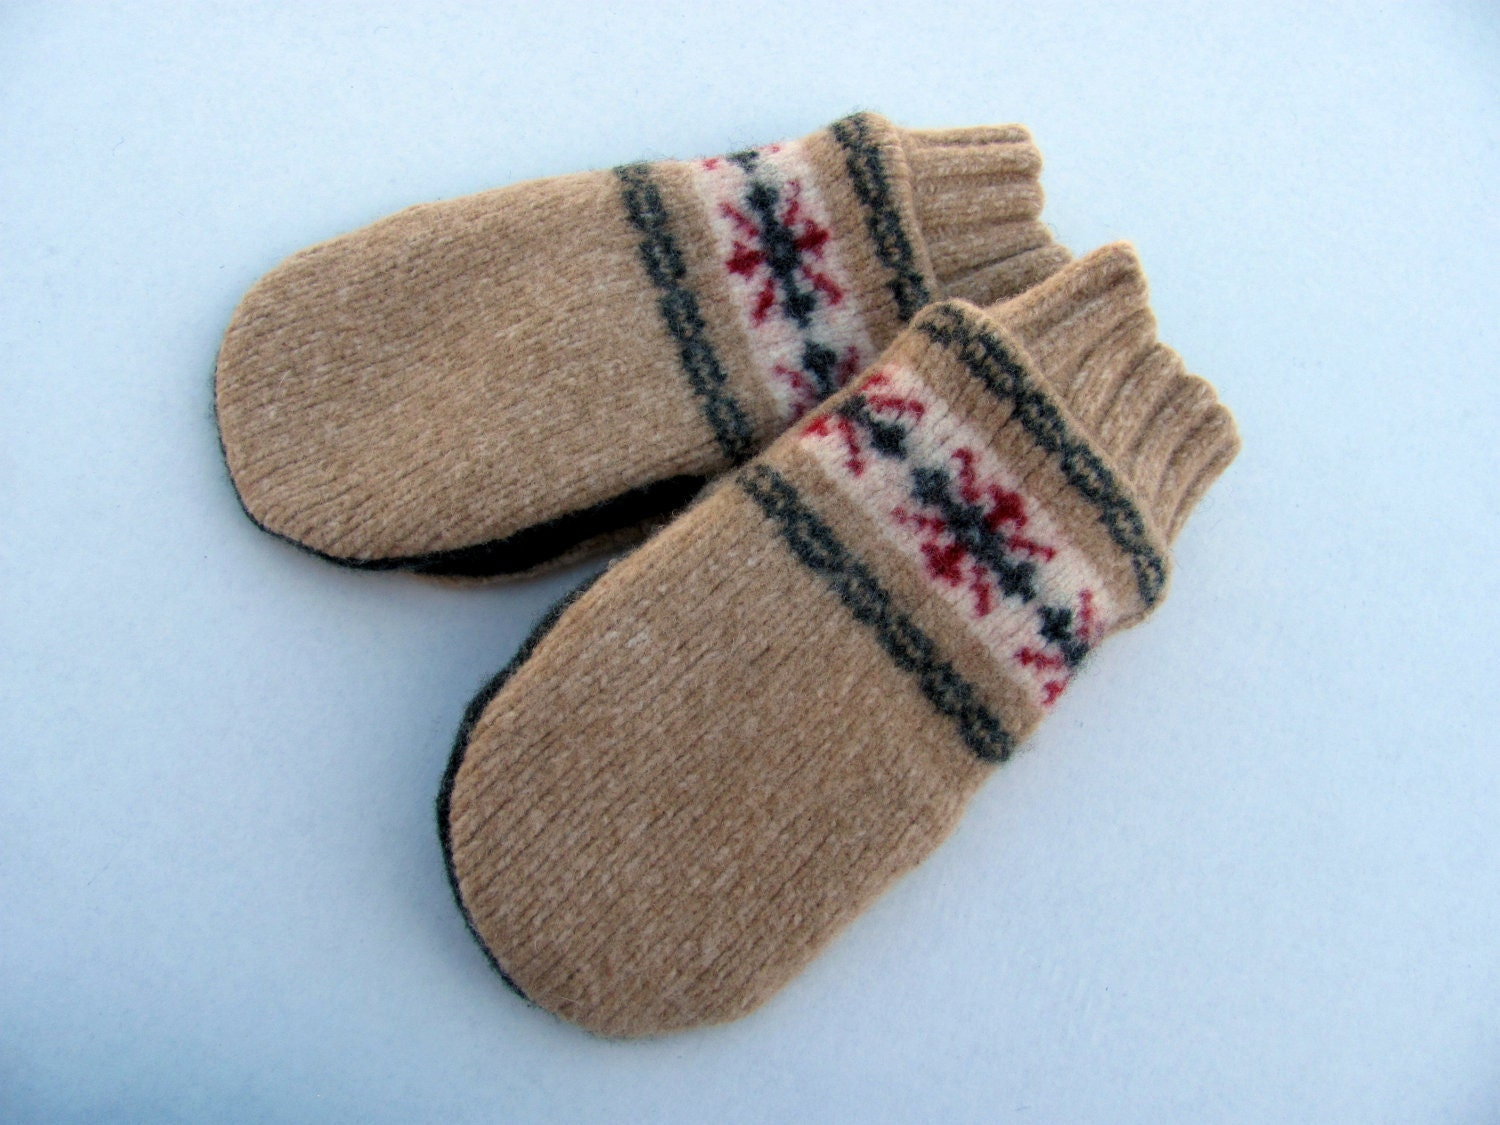 Mittens fleece lined camel tan with red and charcoal gray snowflake